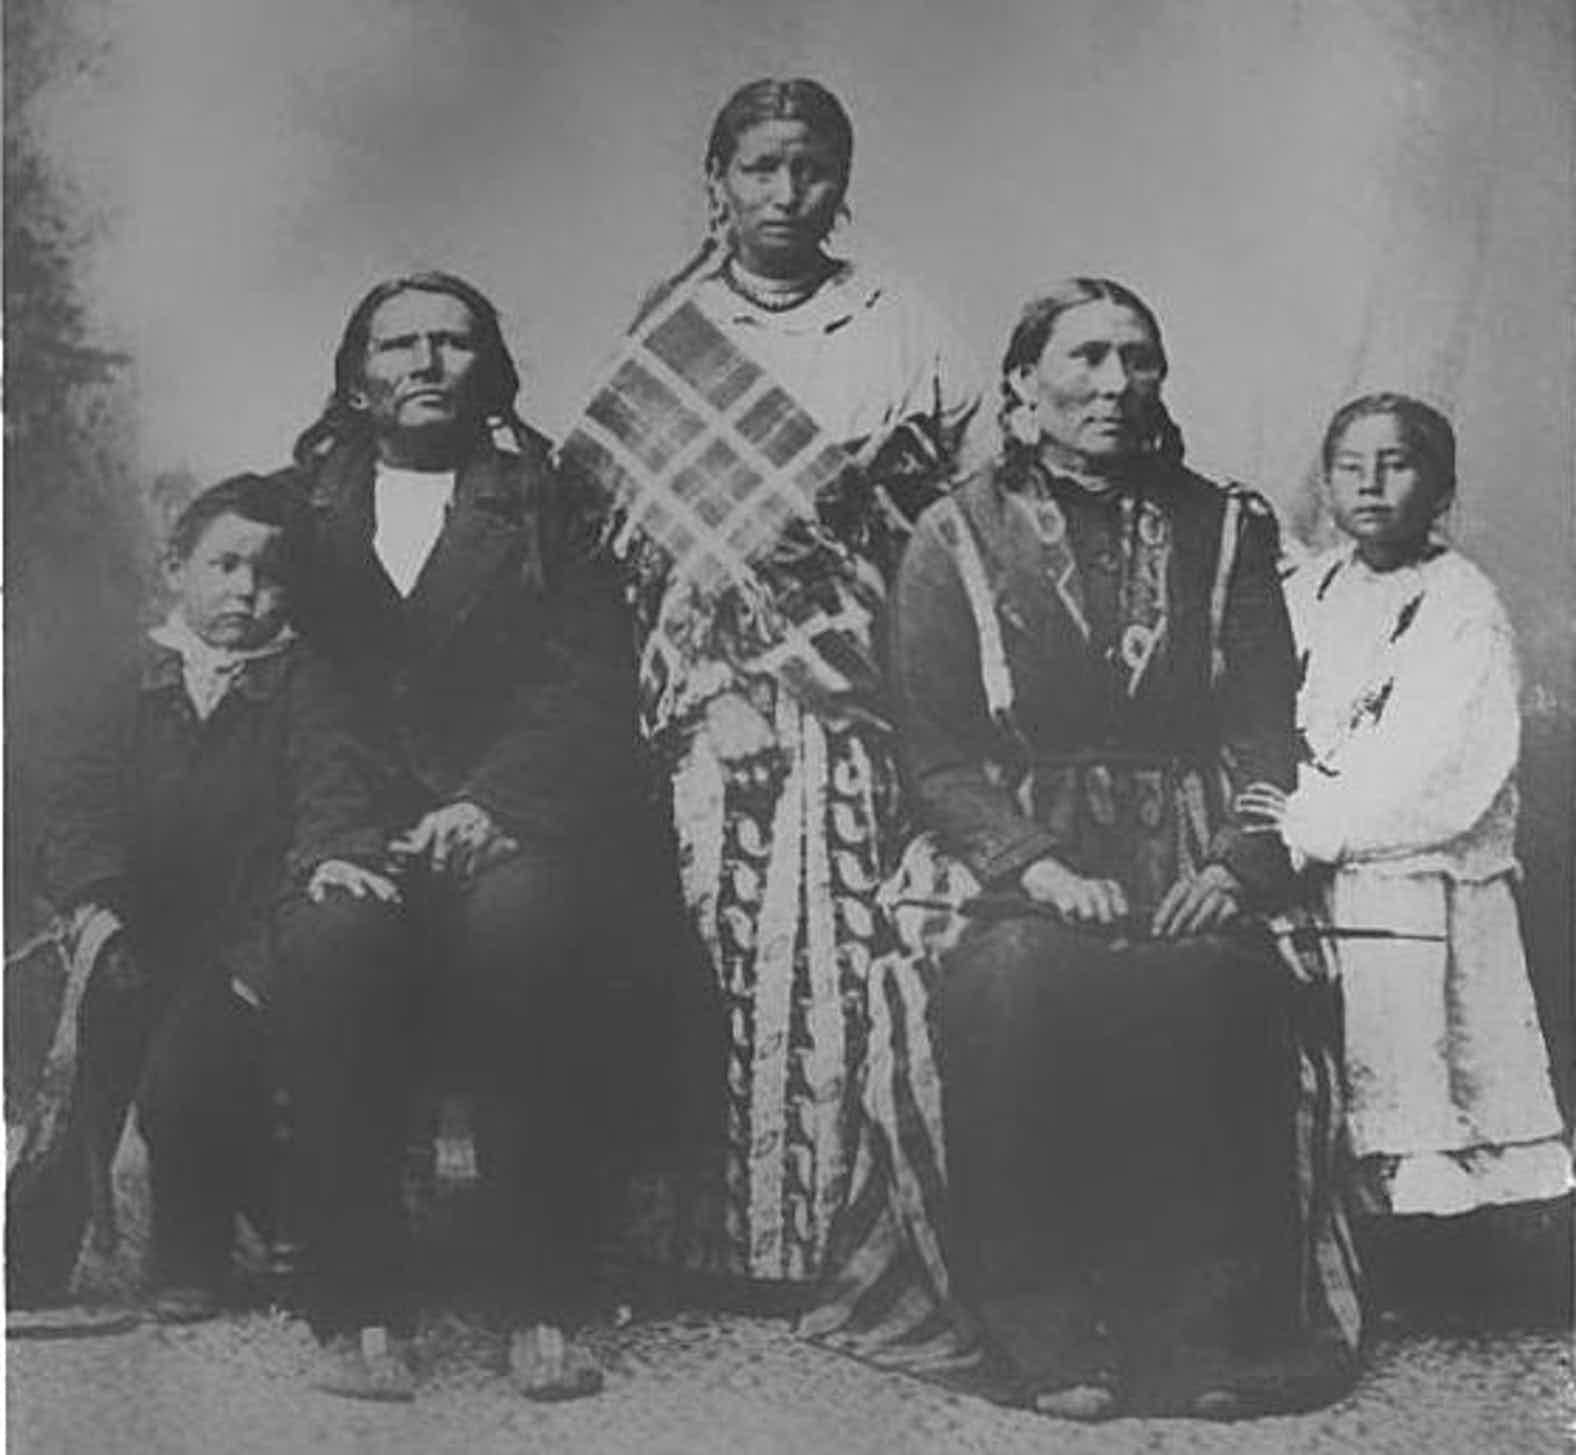 Chief Standing Bear's legacy, civil rights leader of his time - Part 3